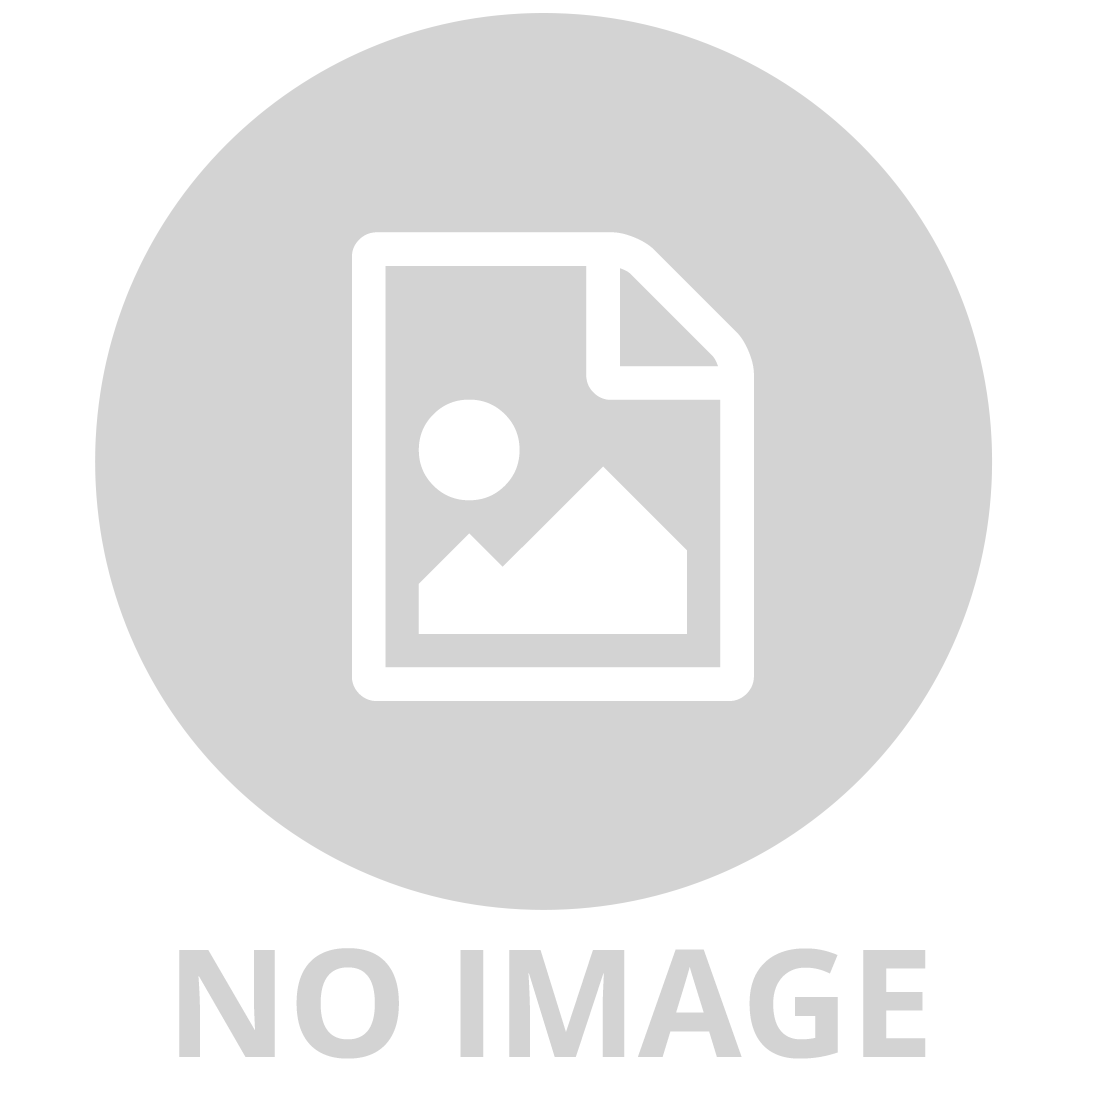 RAVENSBURGER 1000 PIECE JIGSAW PUZZLE FROM SEA TO SHINING SEA